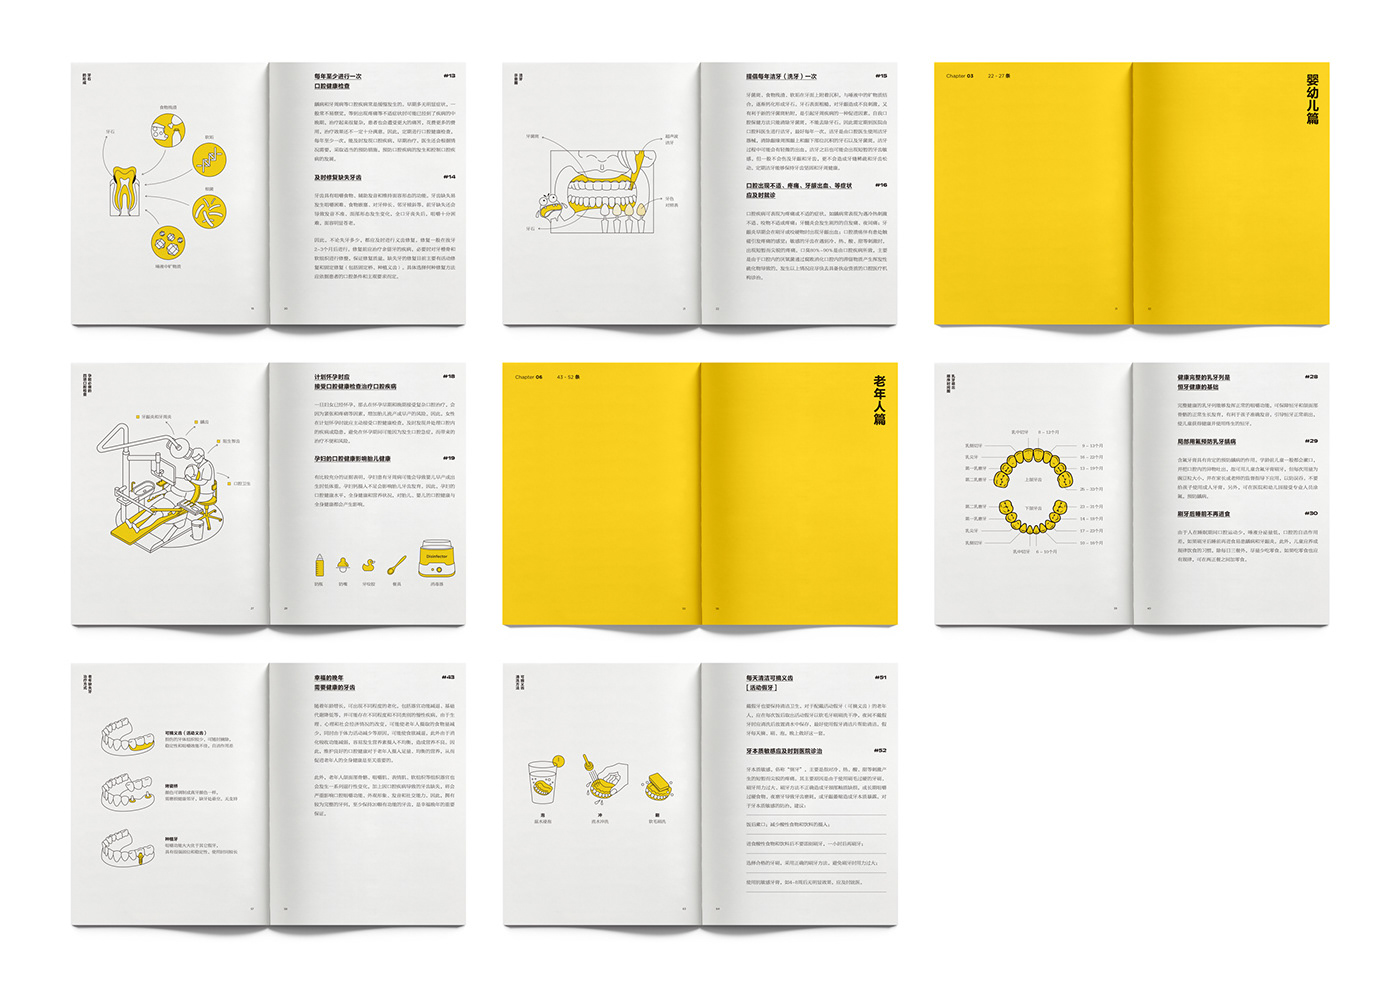 oral Guide book hospital china editorial infographic medical doctor yellow